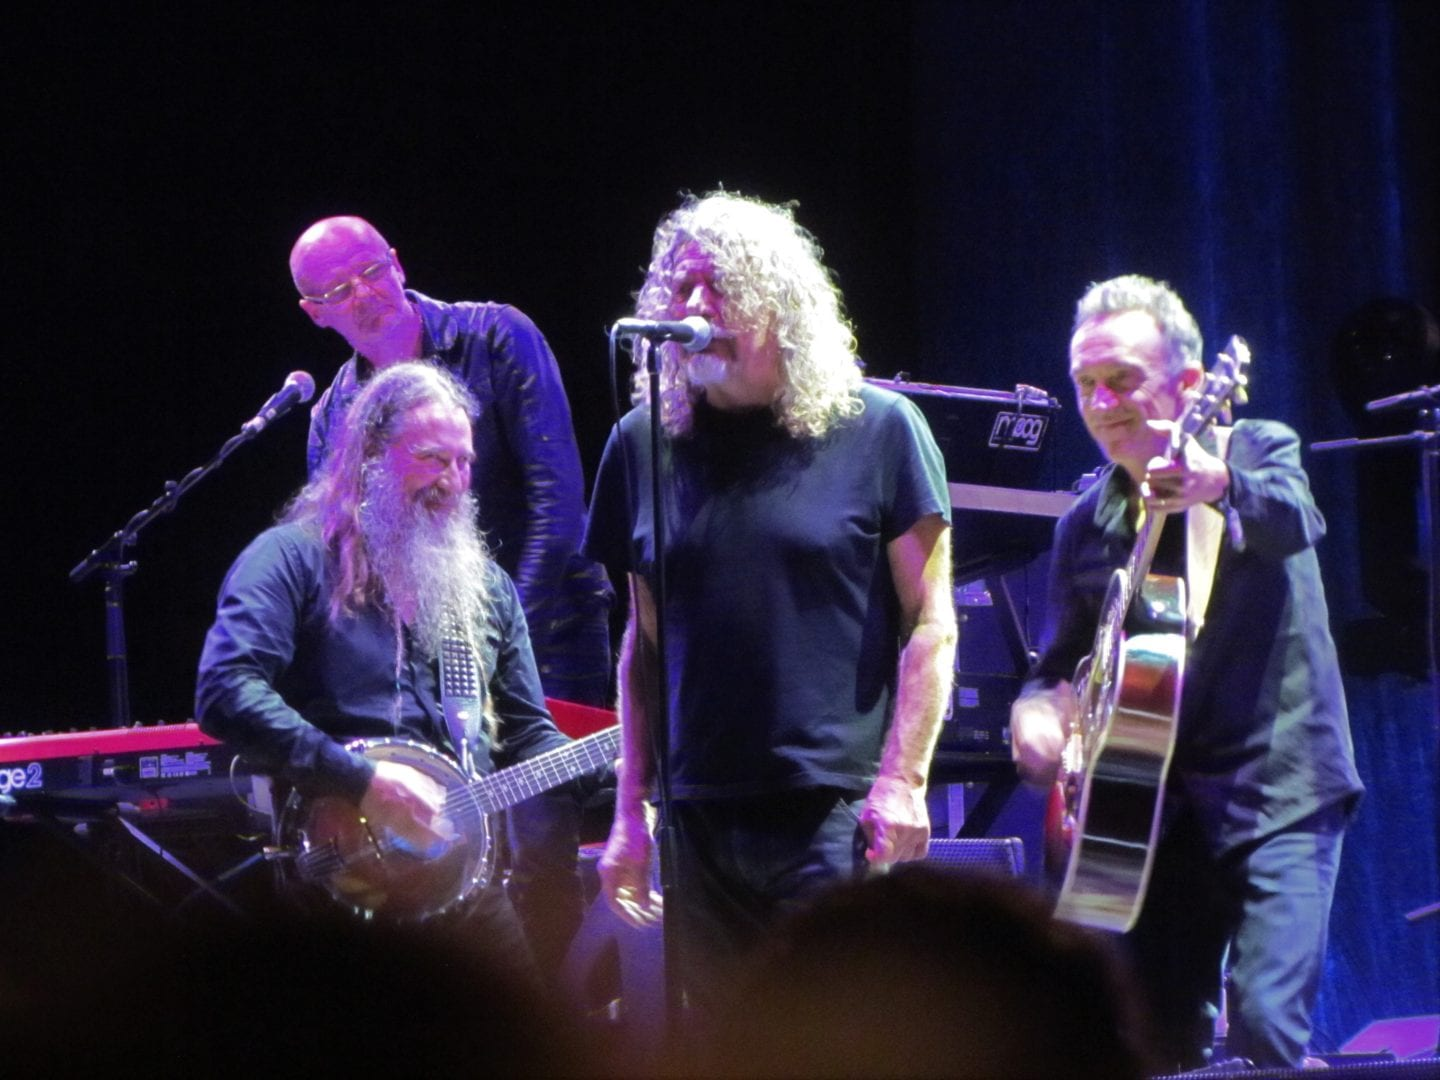 Robert Plant singing on stage with his band mates